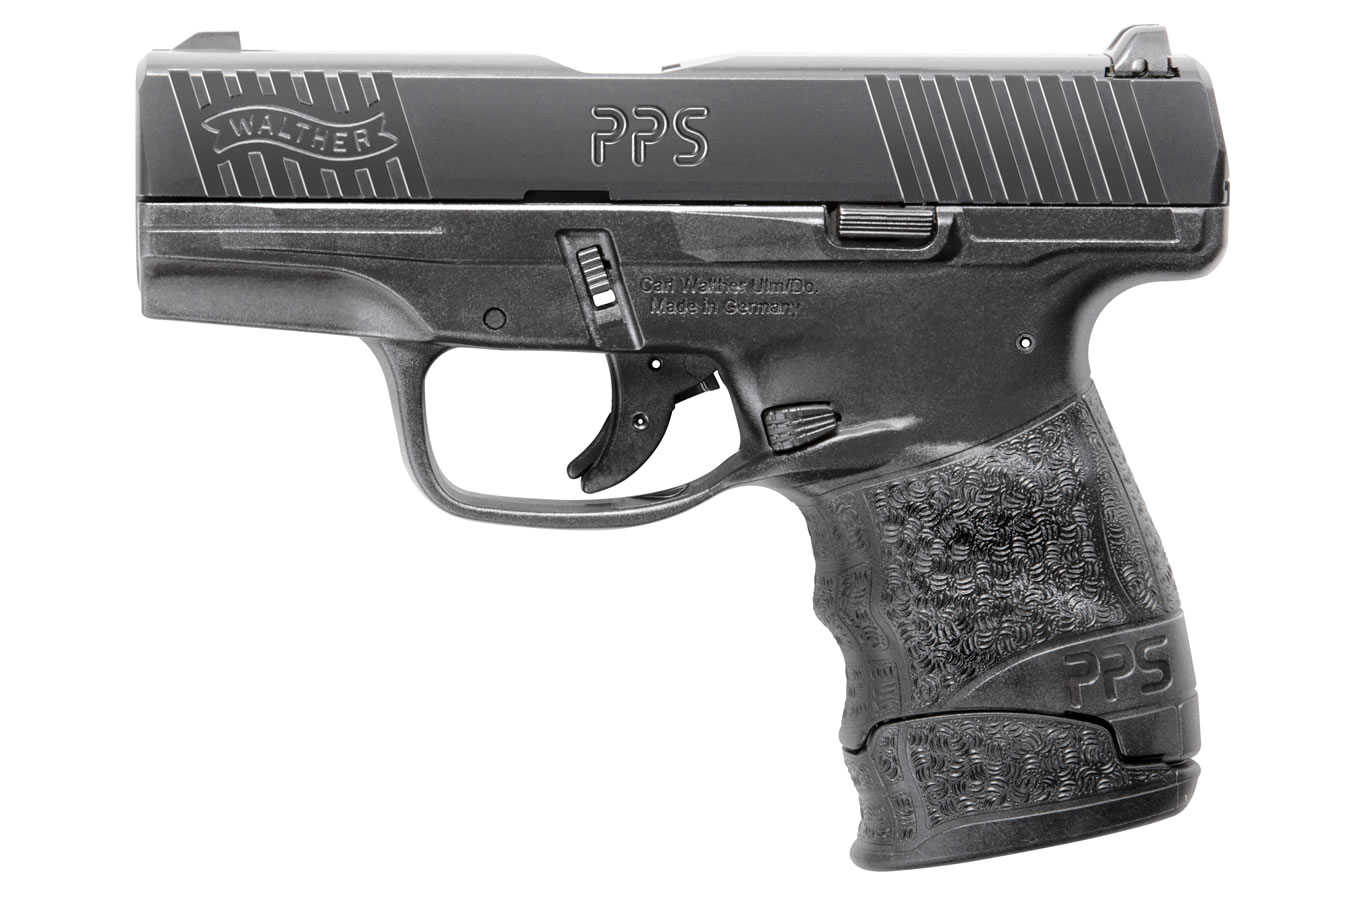 walther pps m2 9mm le edition with night sights sportsman s rh sportsmansoutdoorsuperstore com 9 Millimeter Handguns P Walther PPS vs Glock 26